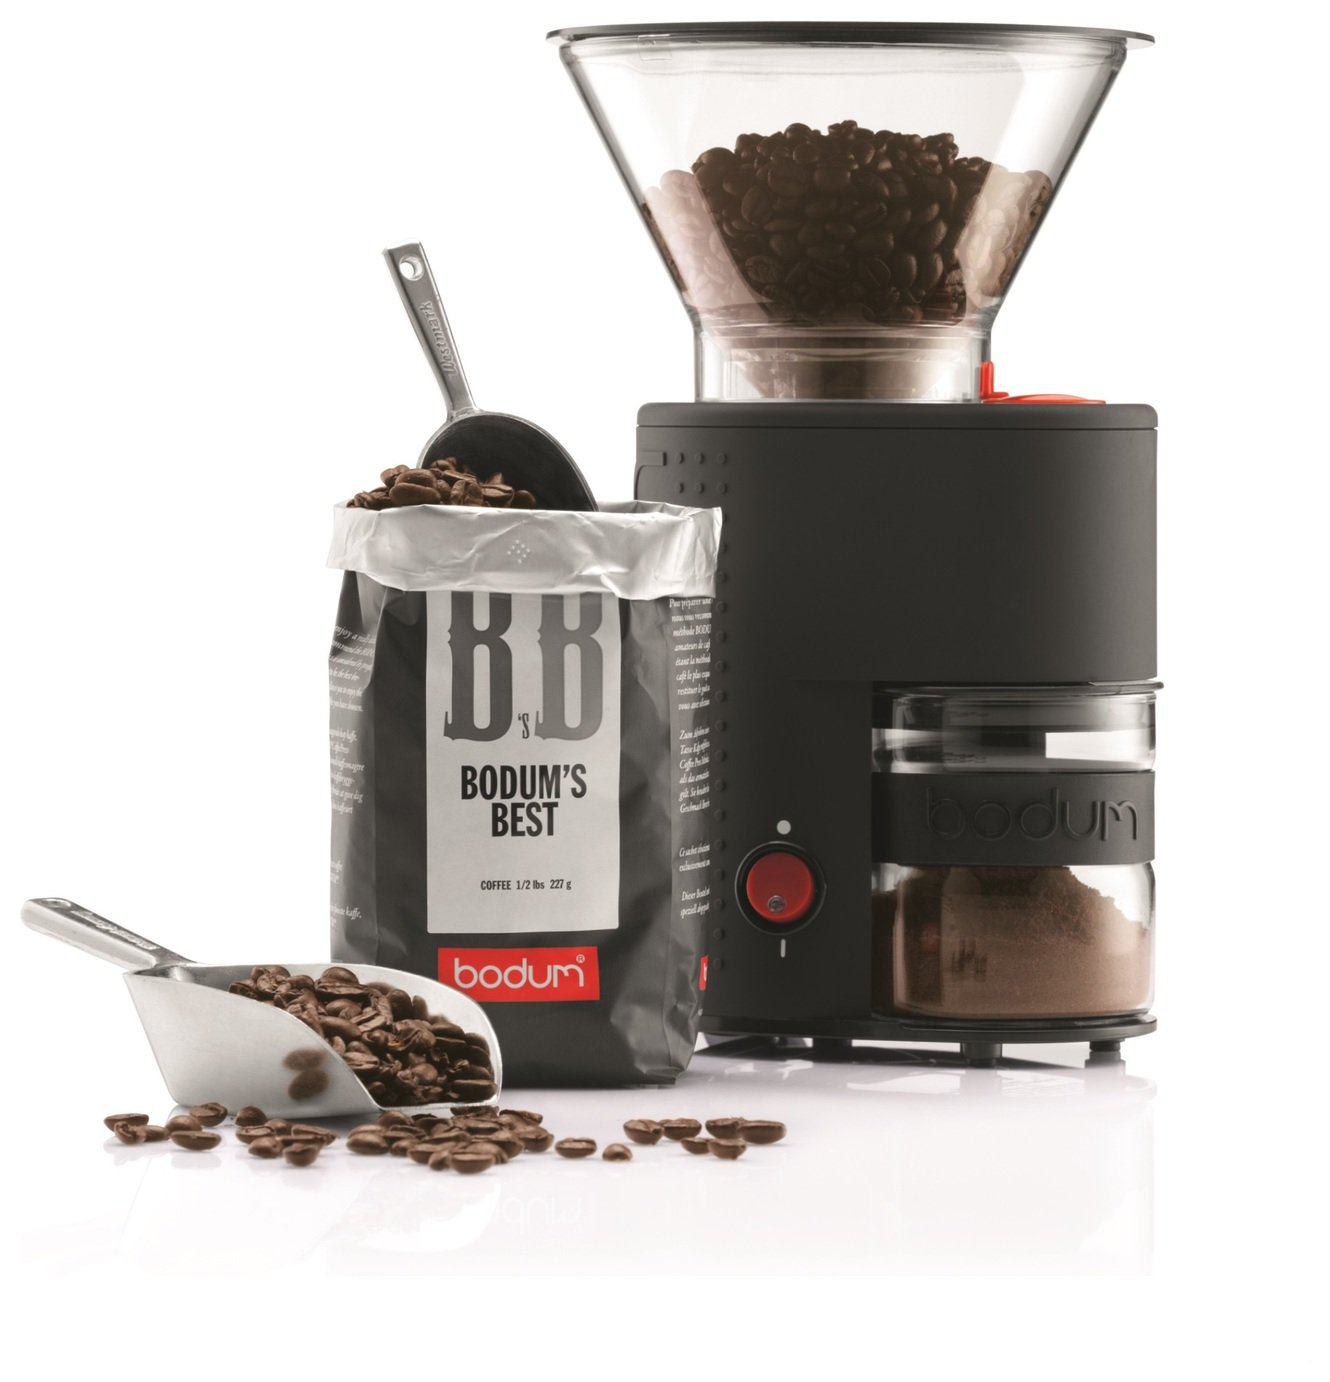 Bodum Burr Coffee Grinder Reviews